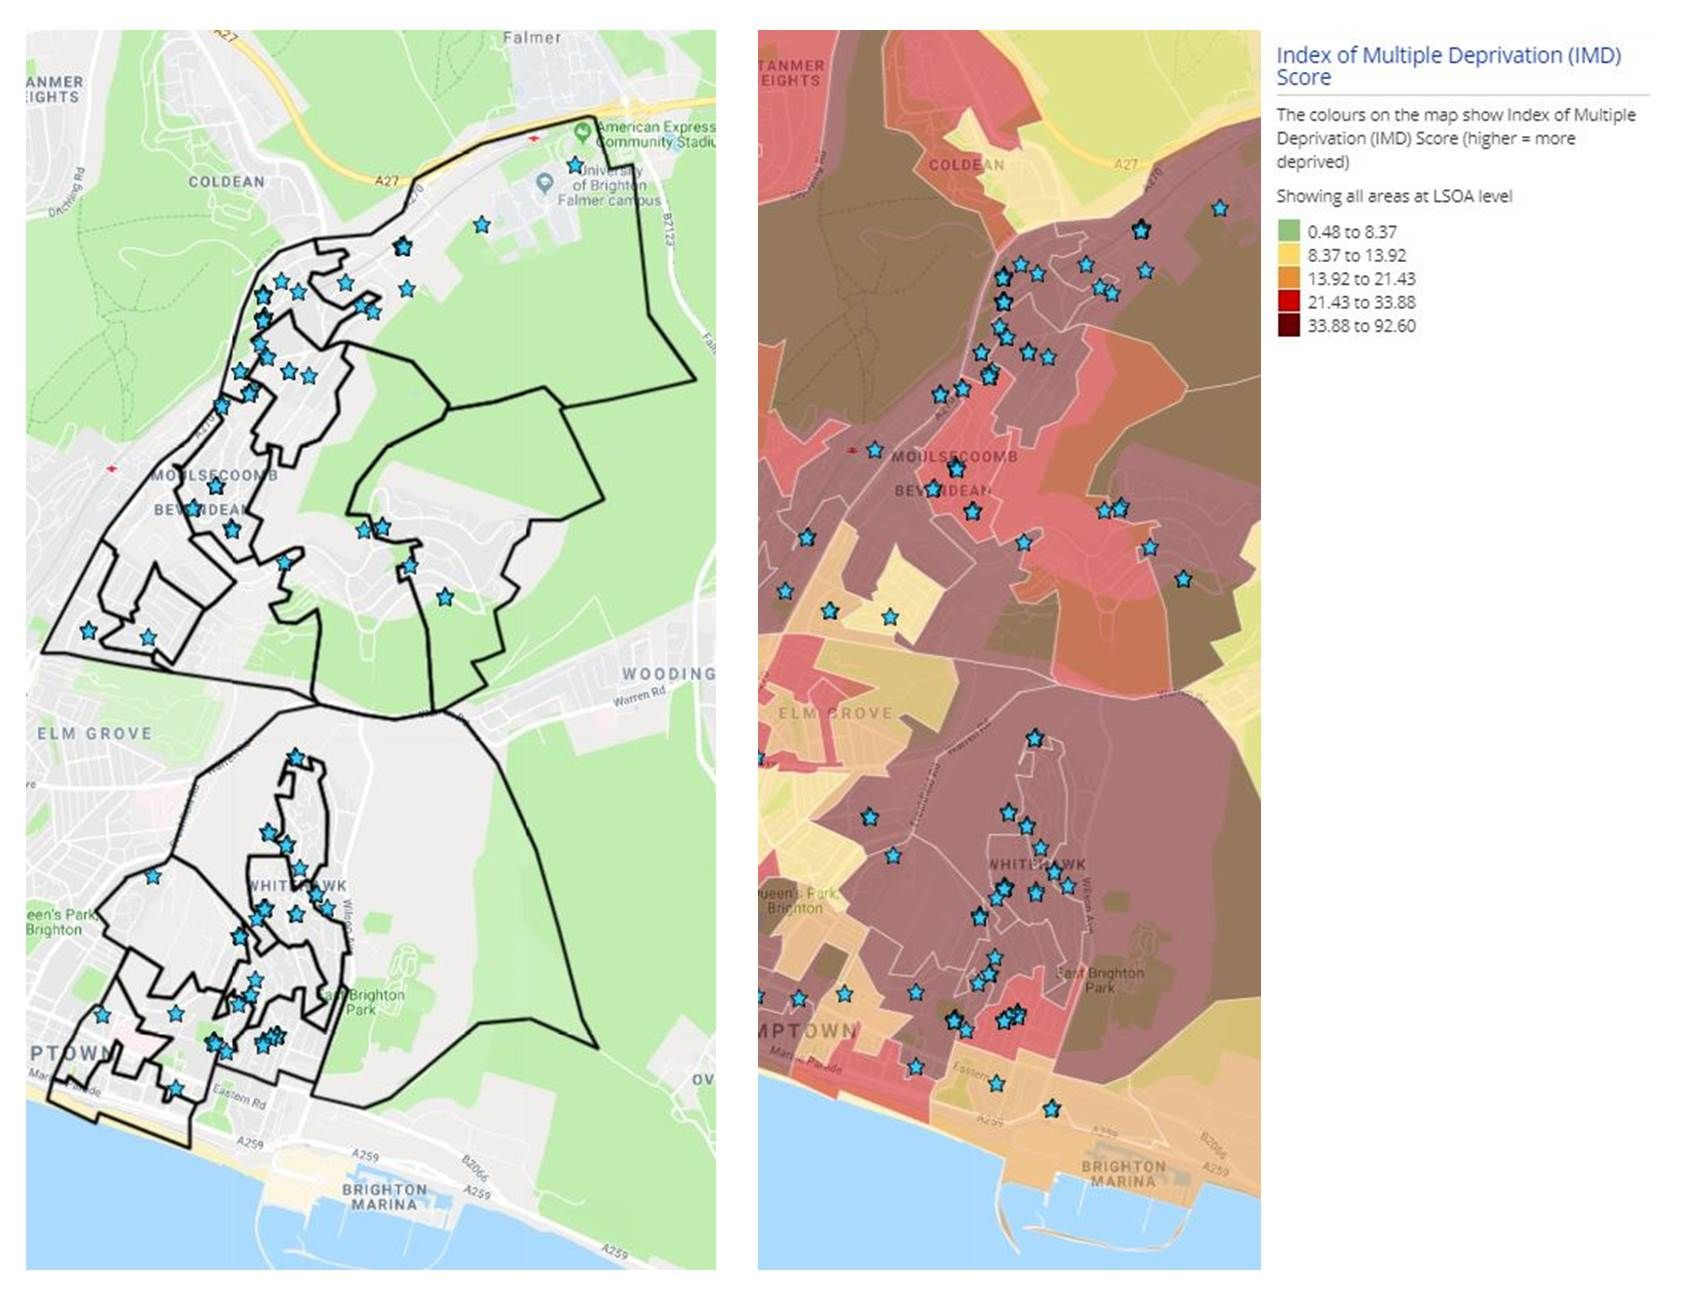 East Brighton Index of Multiple Deprivation